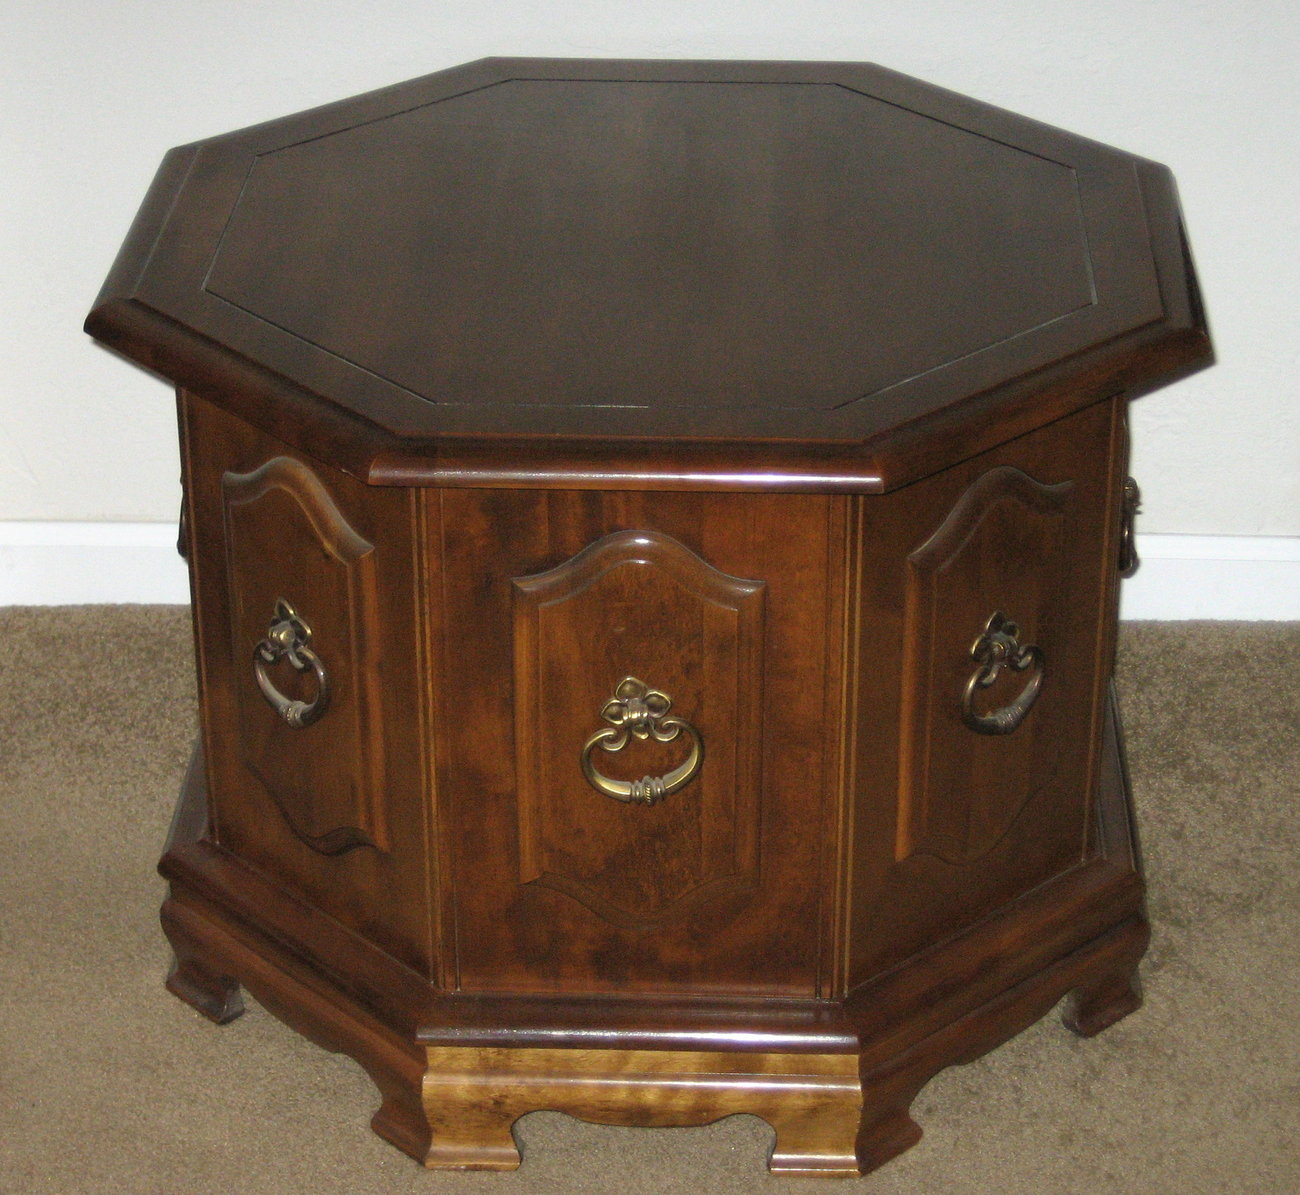 arhaus chandelier probably terrific beautiful octagon end table with storage zef jam style dog make wooden house design small half circle accent restoration hardware salvaged wood